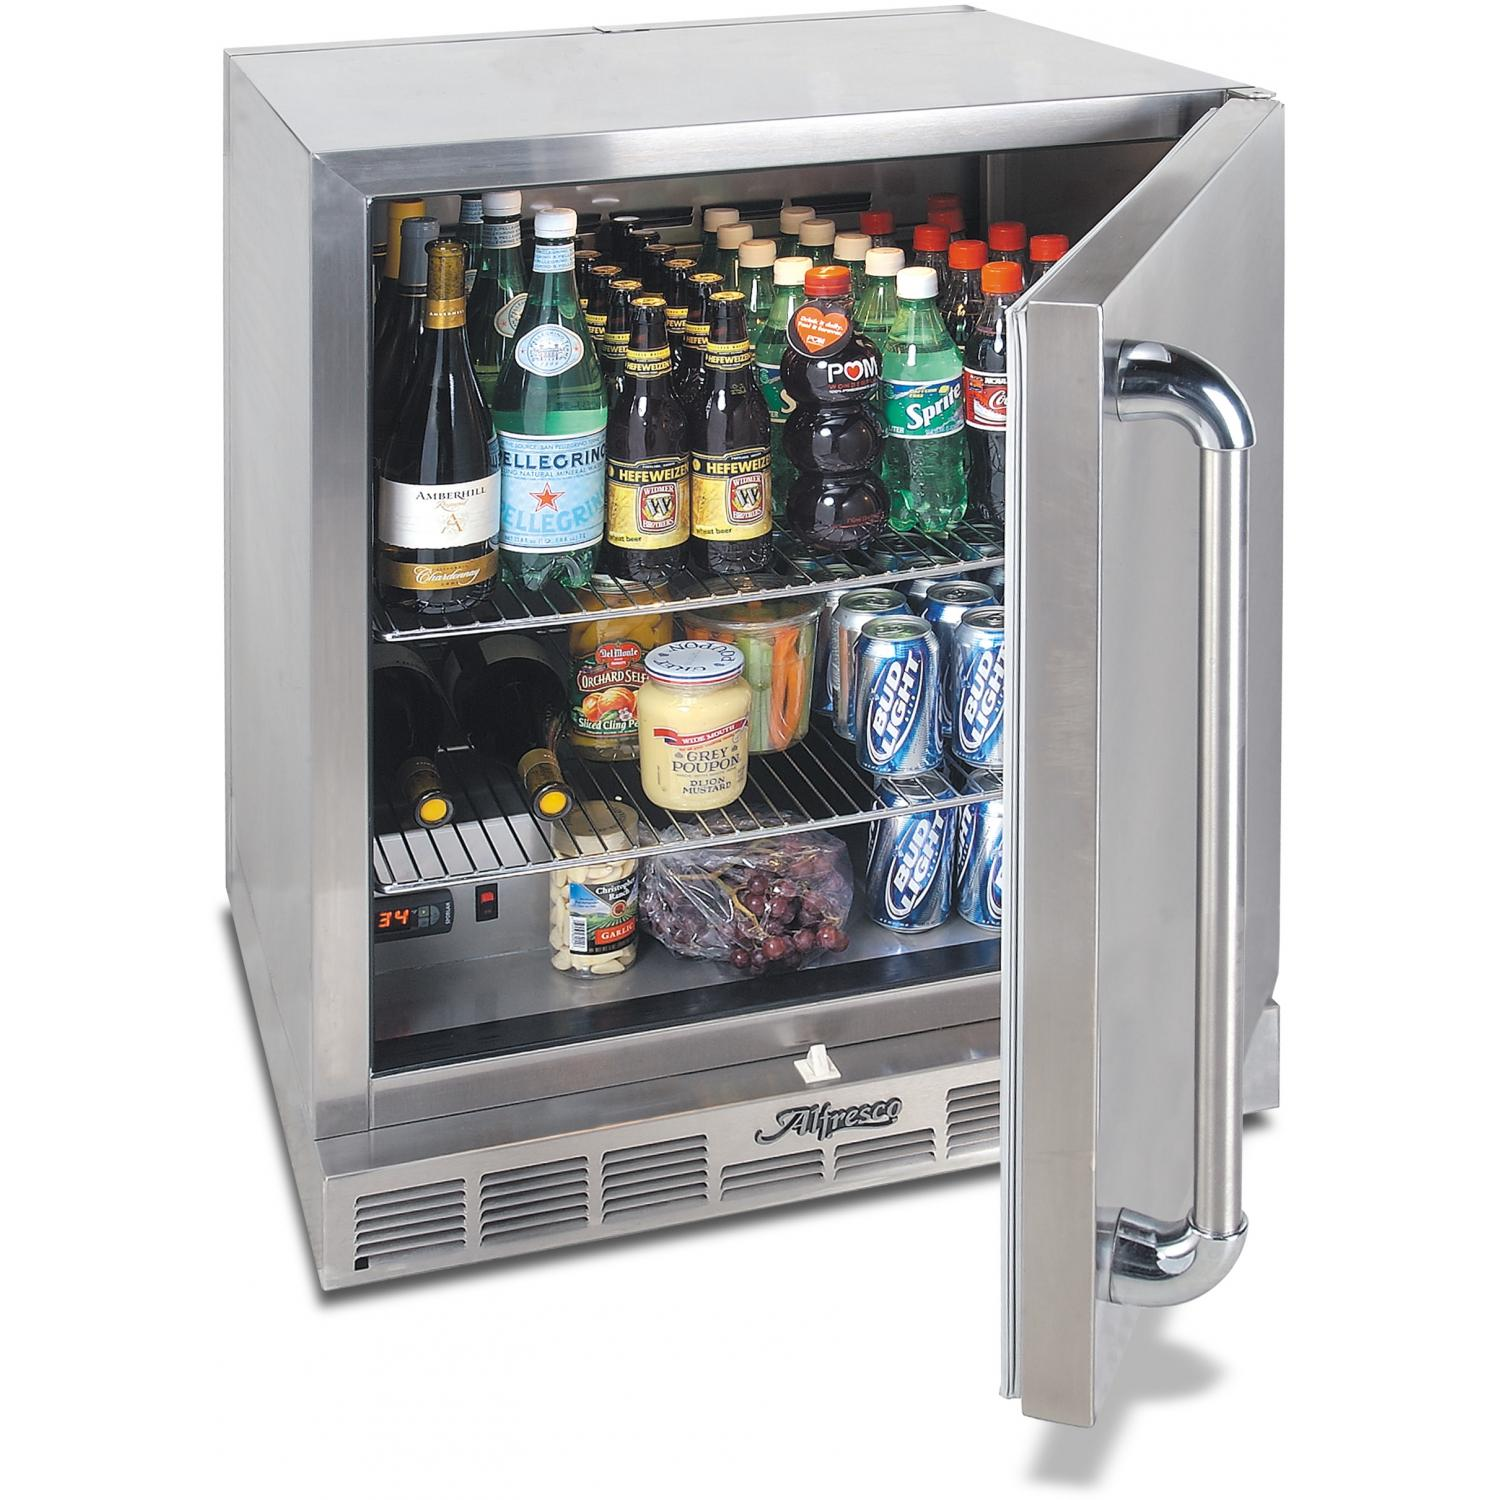 Alfresco Compact Refrigerator 28 Inch Under Counter Kegerator